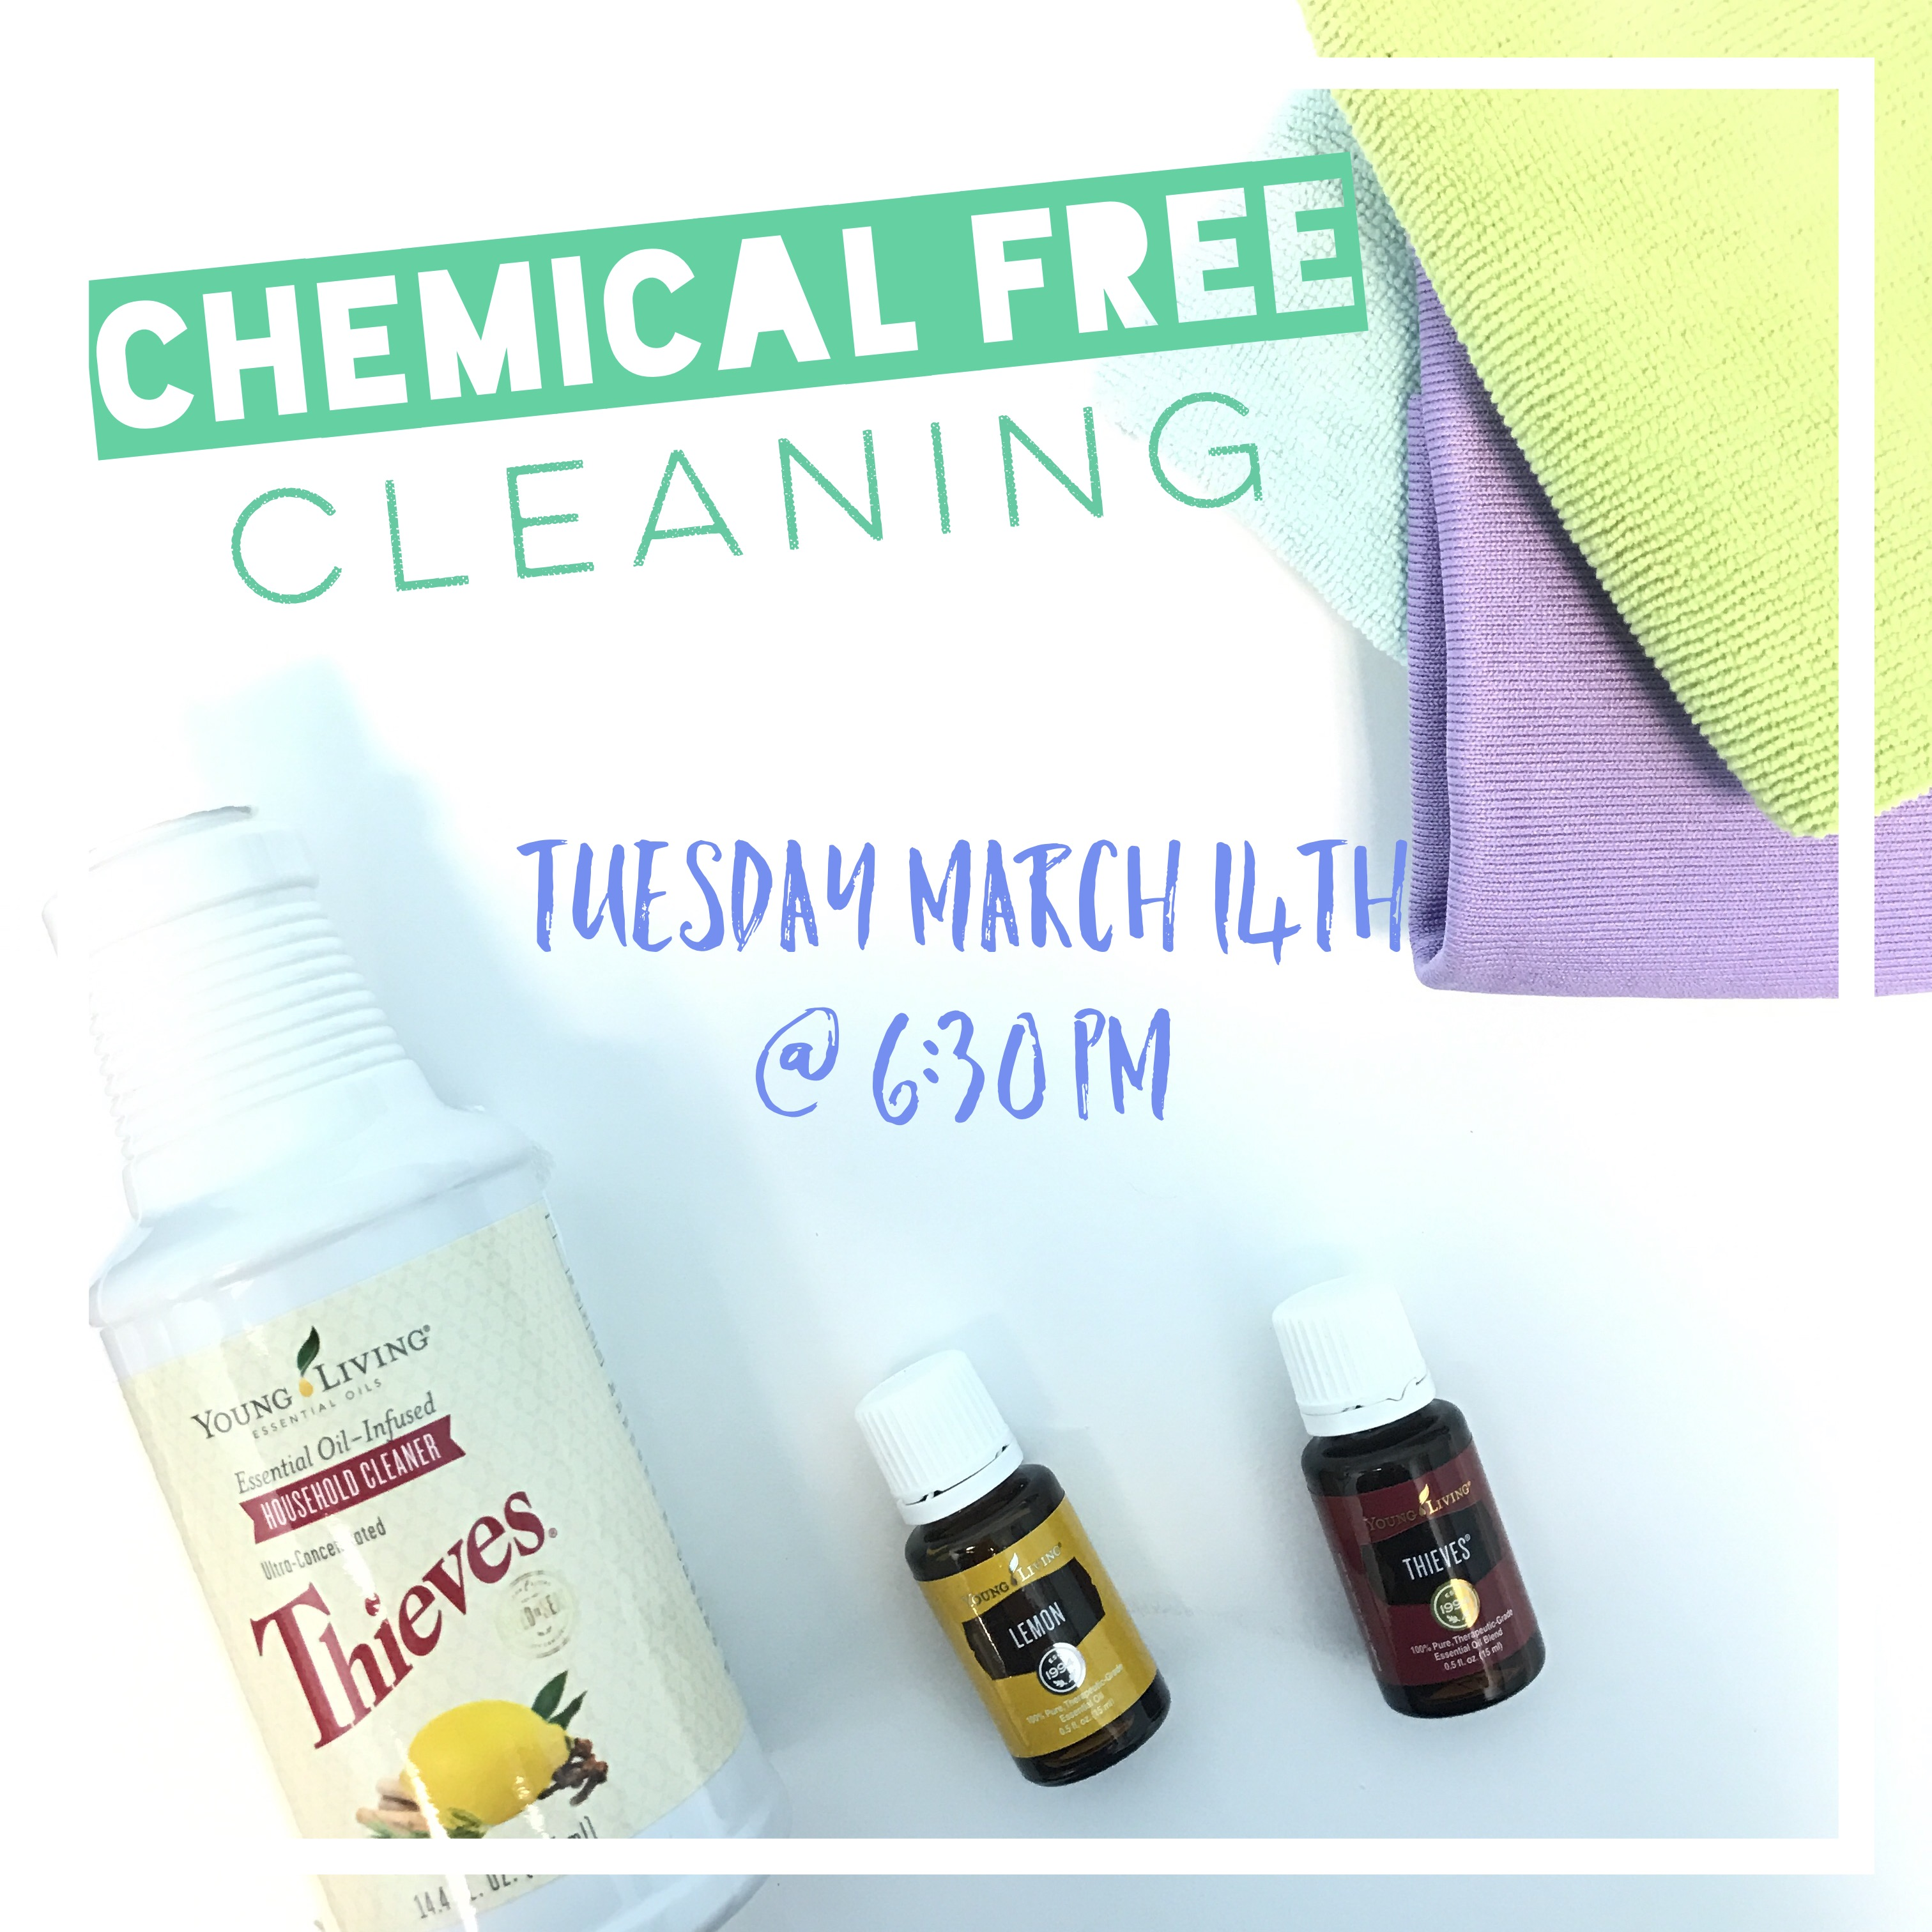 Chemicalfreecleaning